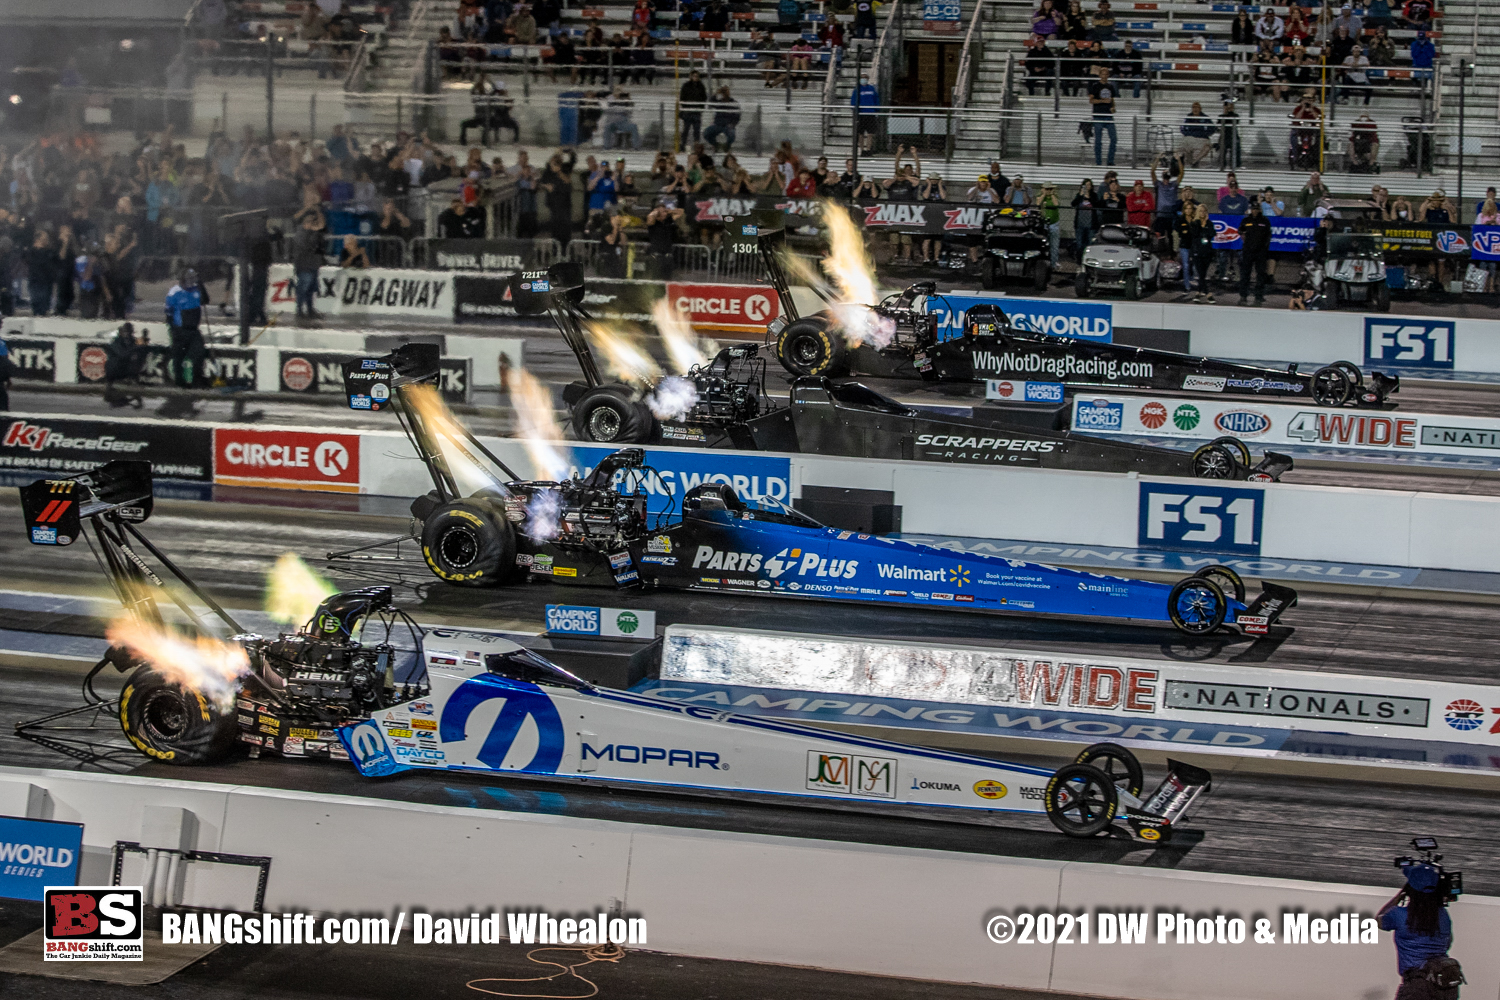 NGK NTK NHRA Four-Wide Nationals Nitro Photos: Header Flames Up And Hammer Down In Charlotte!